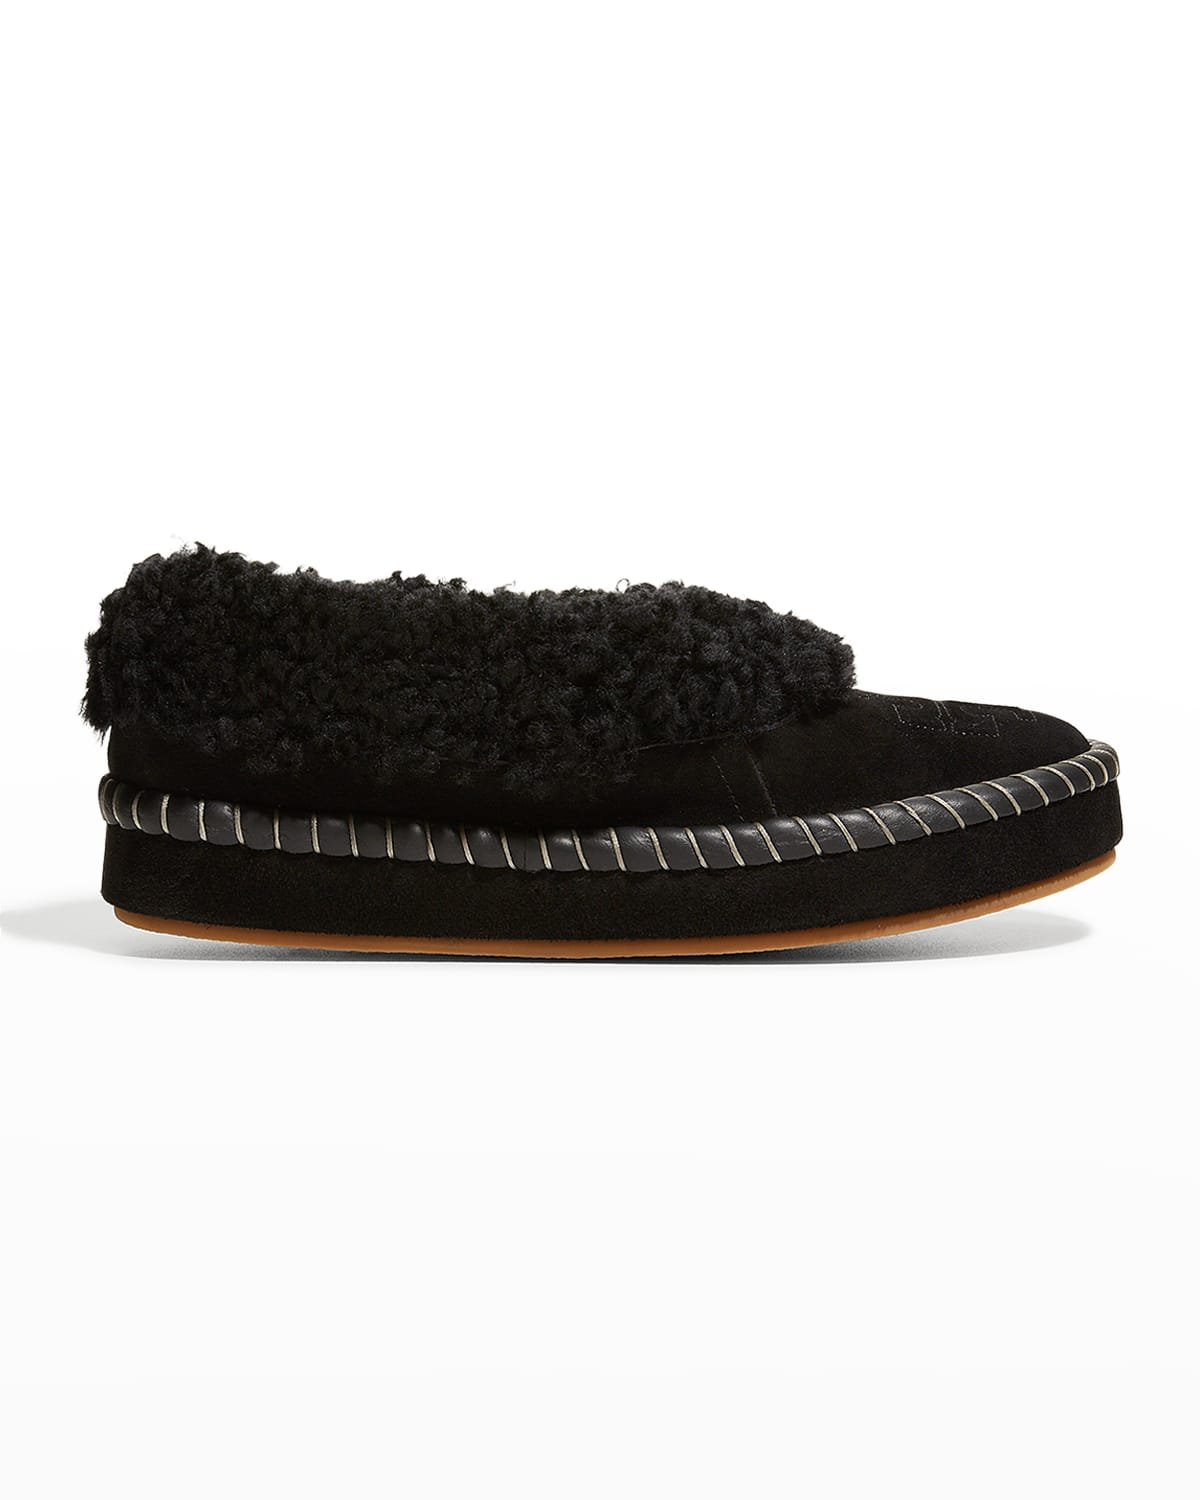 Suede Shearling Logo Loafer Slippers